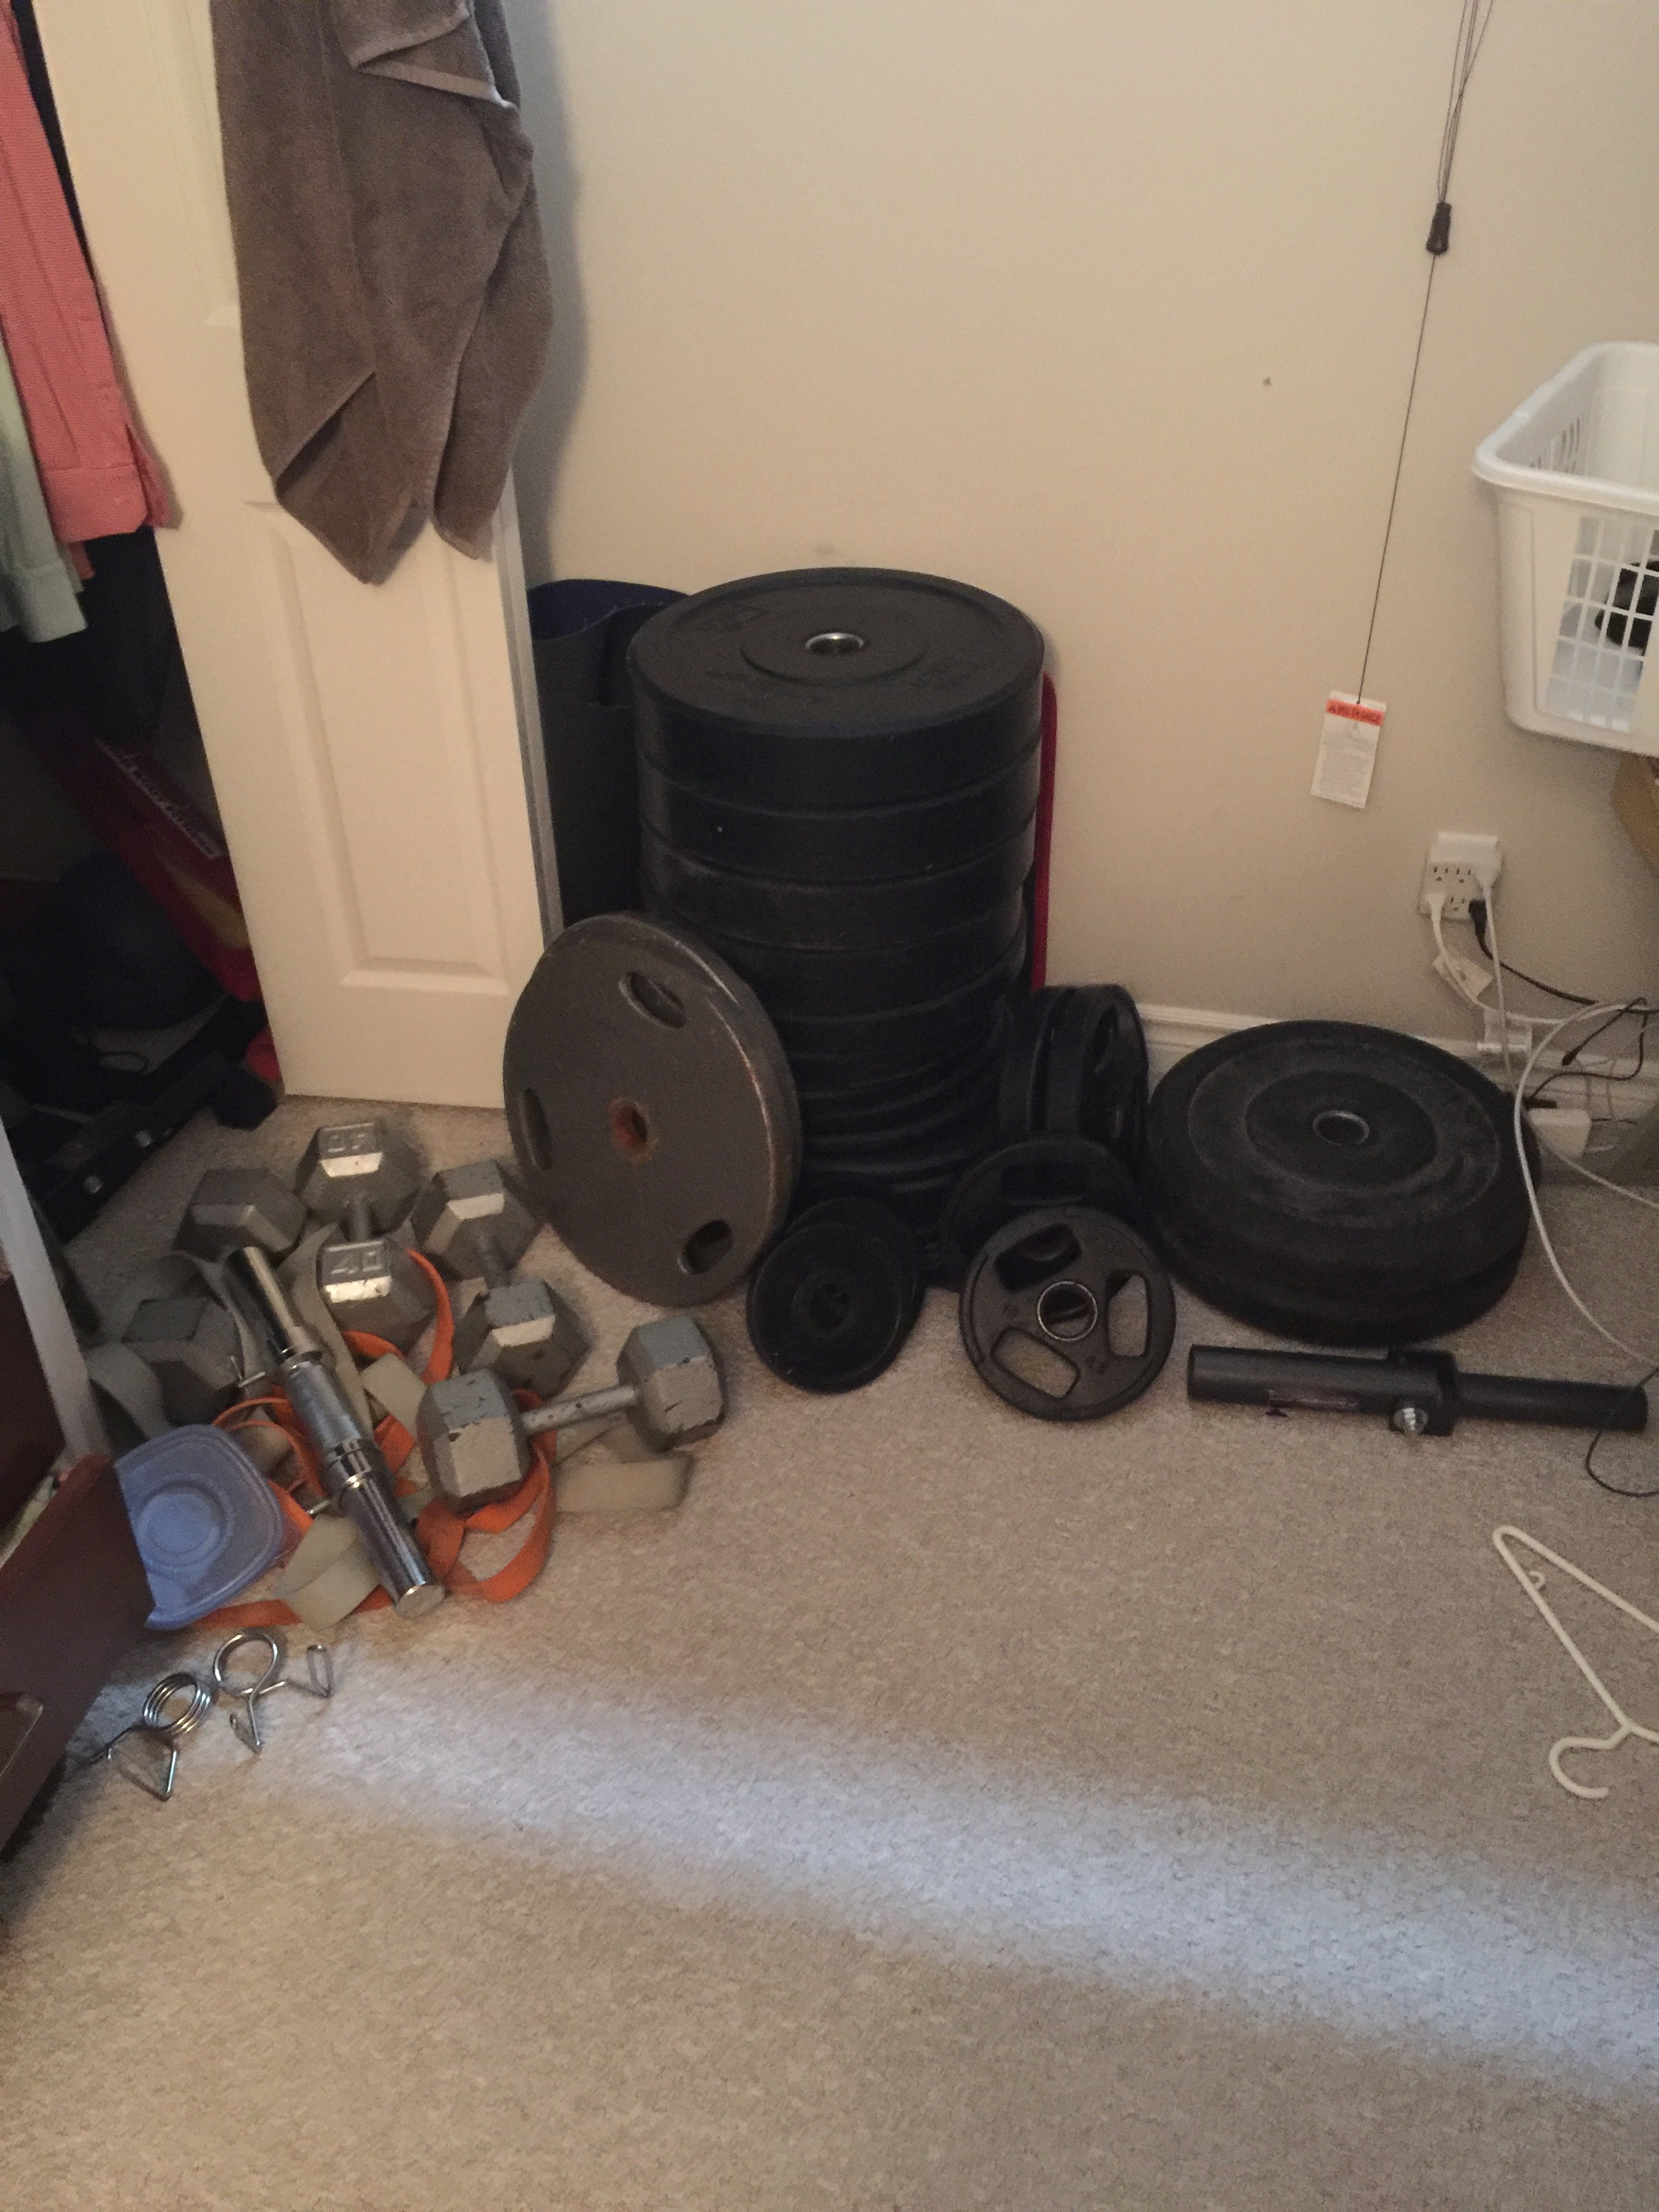 The squat stands fit in my closet when not in use.